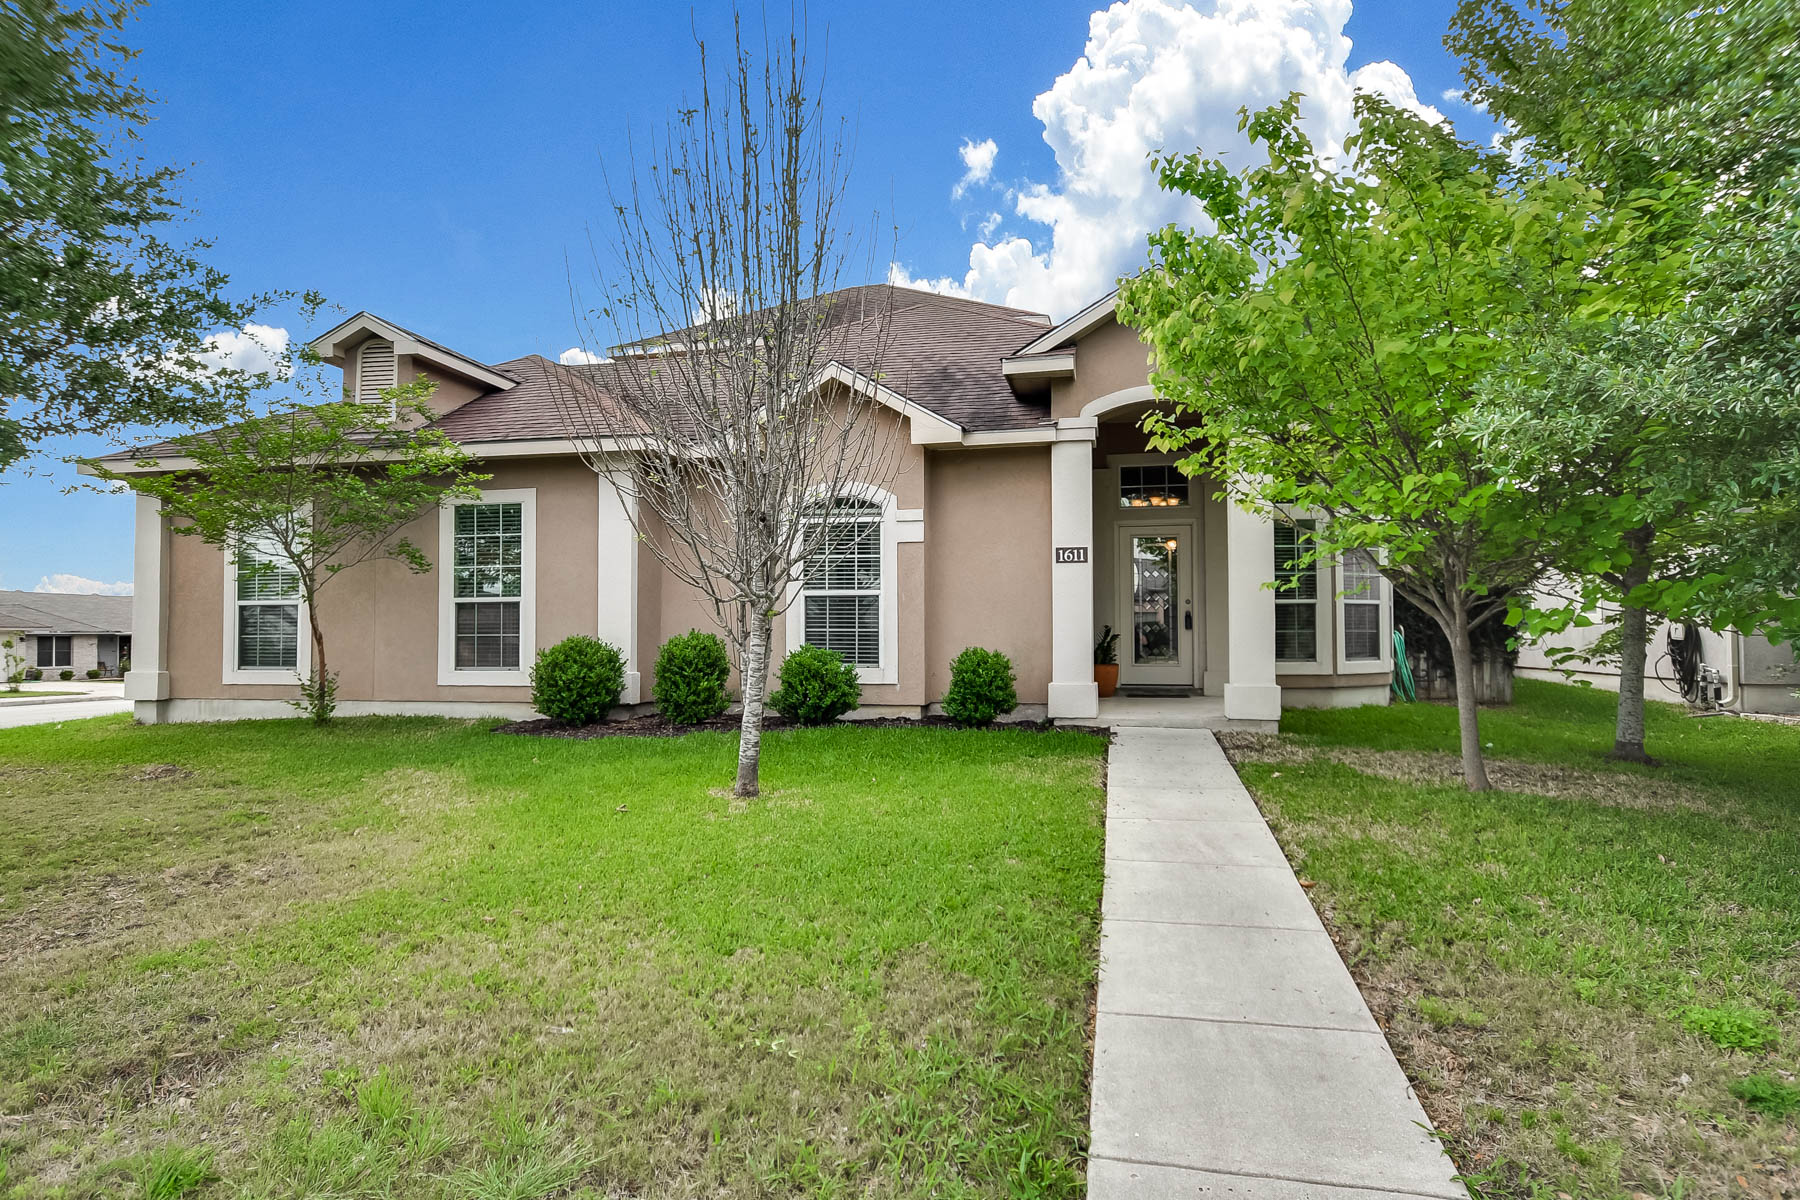 Single Family Home for Sale at Beautiful Home in New Braunfels 1611 Sunblossom Cir New Braunfels, Texas 78130 United States